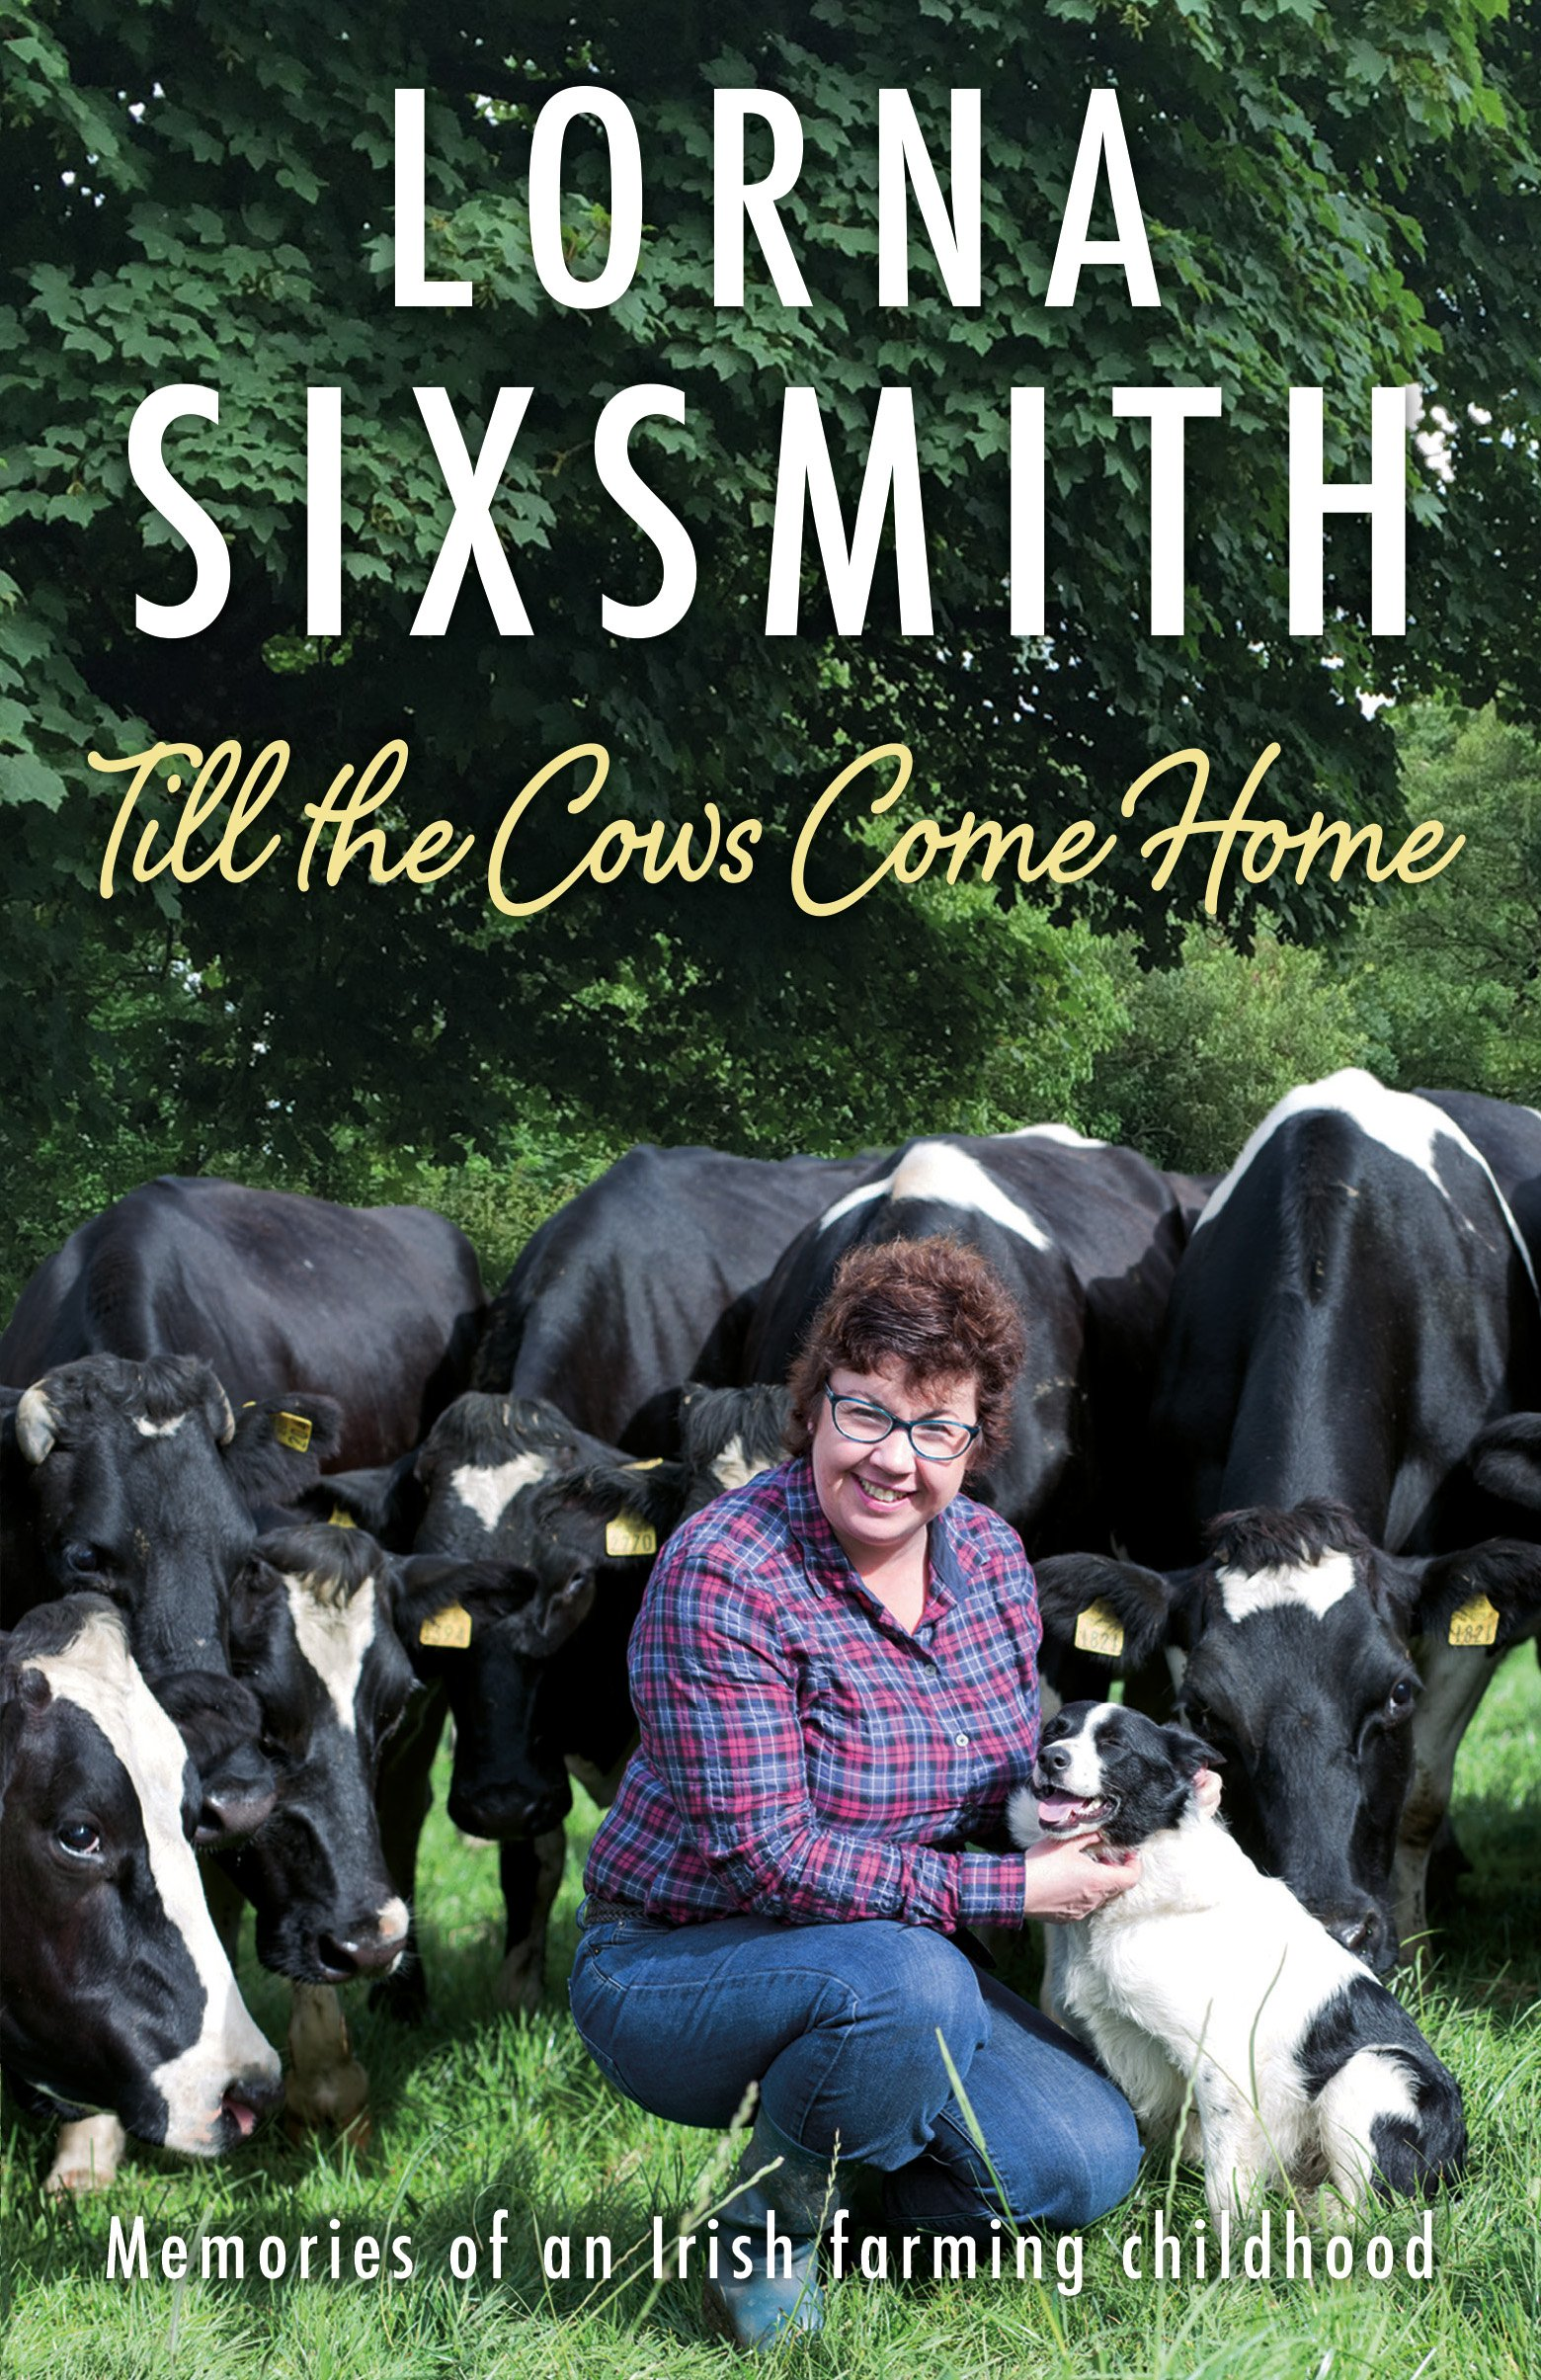 Till the Cows Come Home: Memories of an Irish farming childhood Hardcover –  30 May 2018